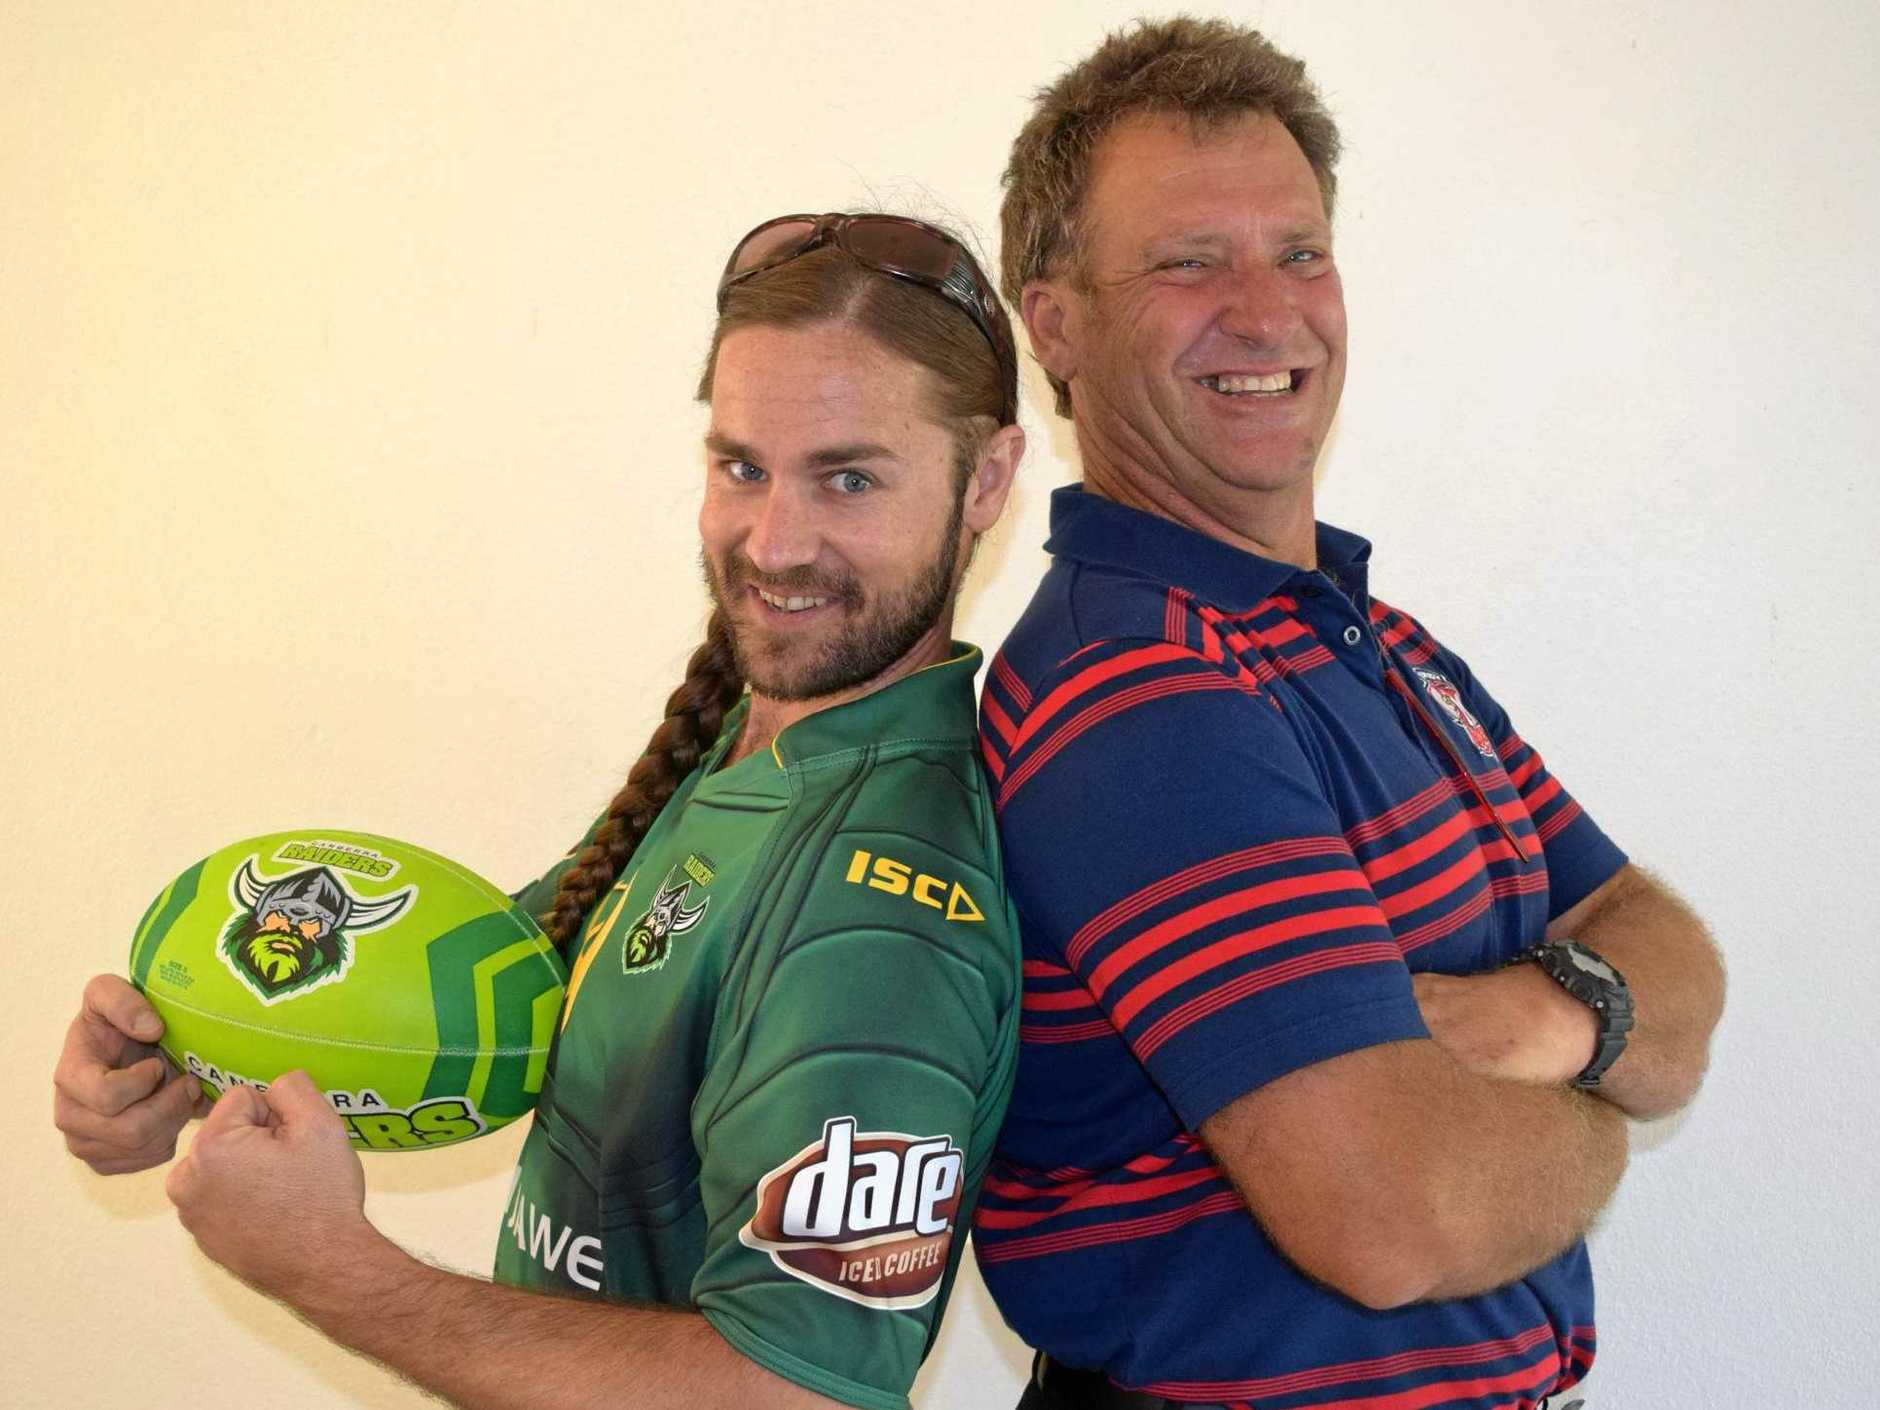 Canberra Raiders devotee Daniel Thursberg and Sydney Roosters fan Bob Manning are ready to watch their teams play off in the NRL grand final on Sunday.